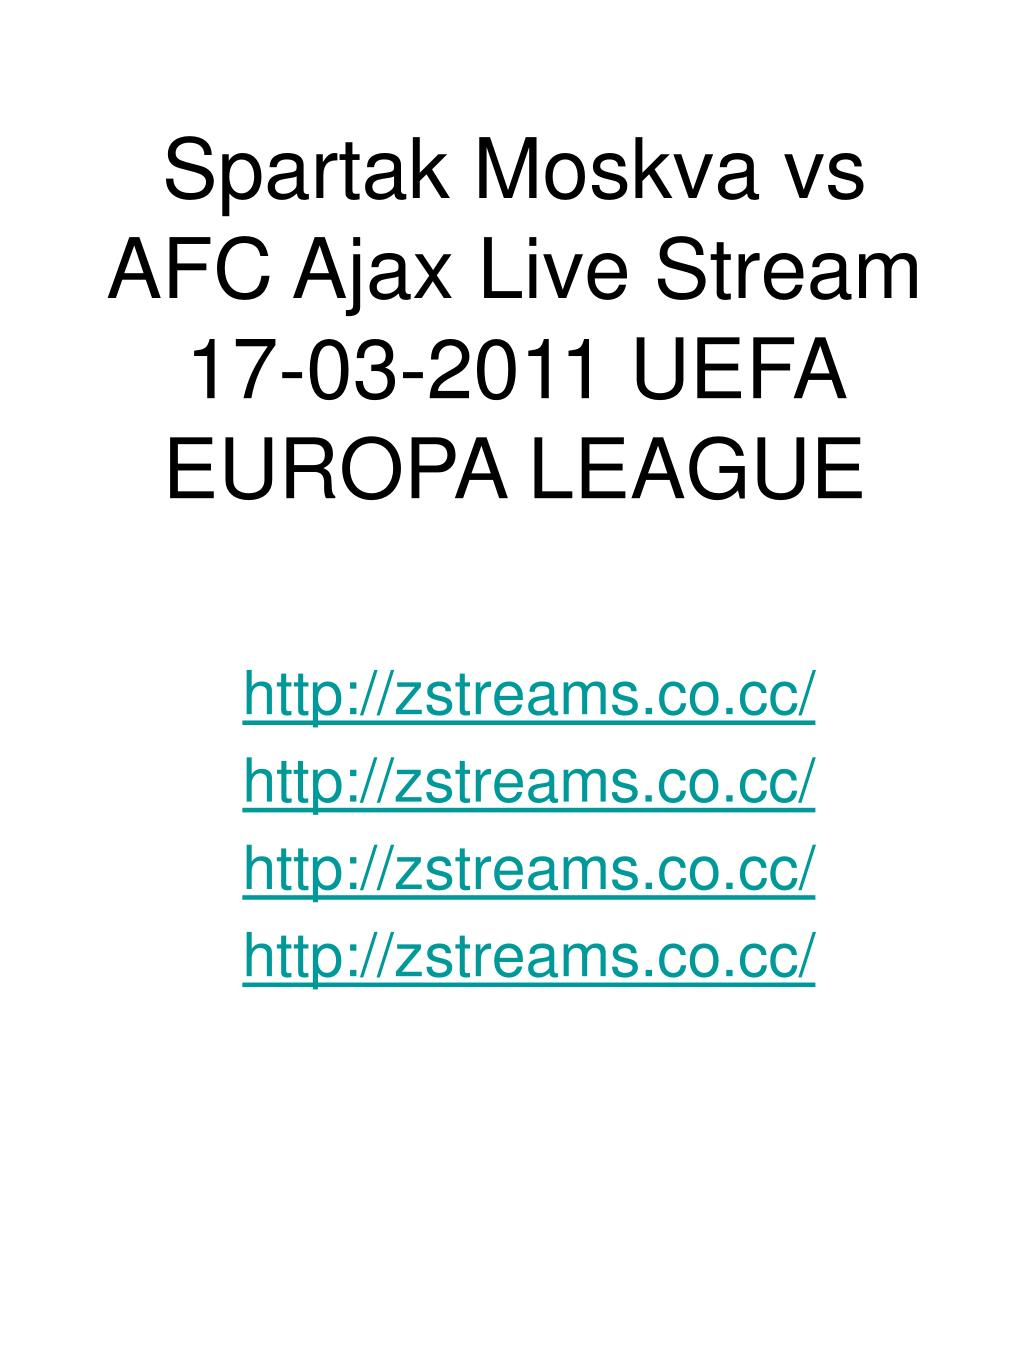 Spartak Moskva vs AFC Ajax Live Stream 17-03-2011 UEFA EUROPA LEAGUE